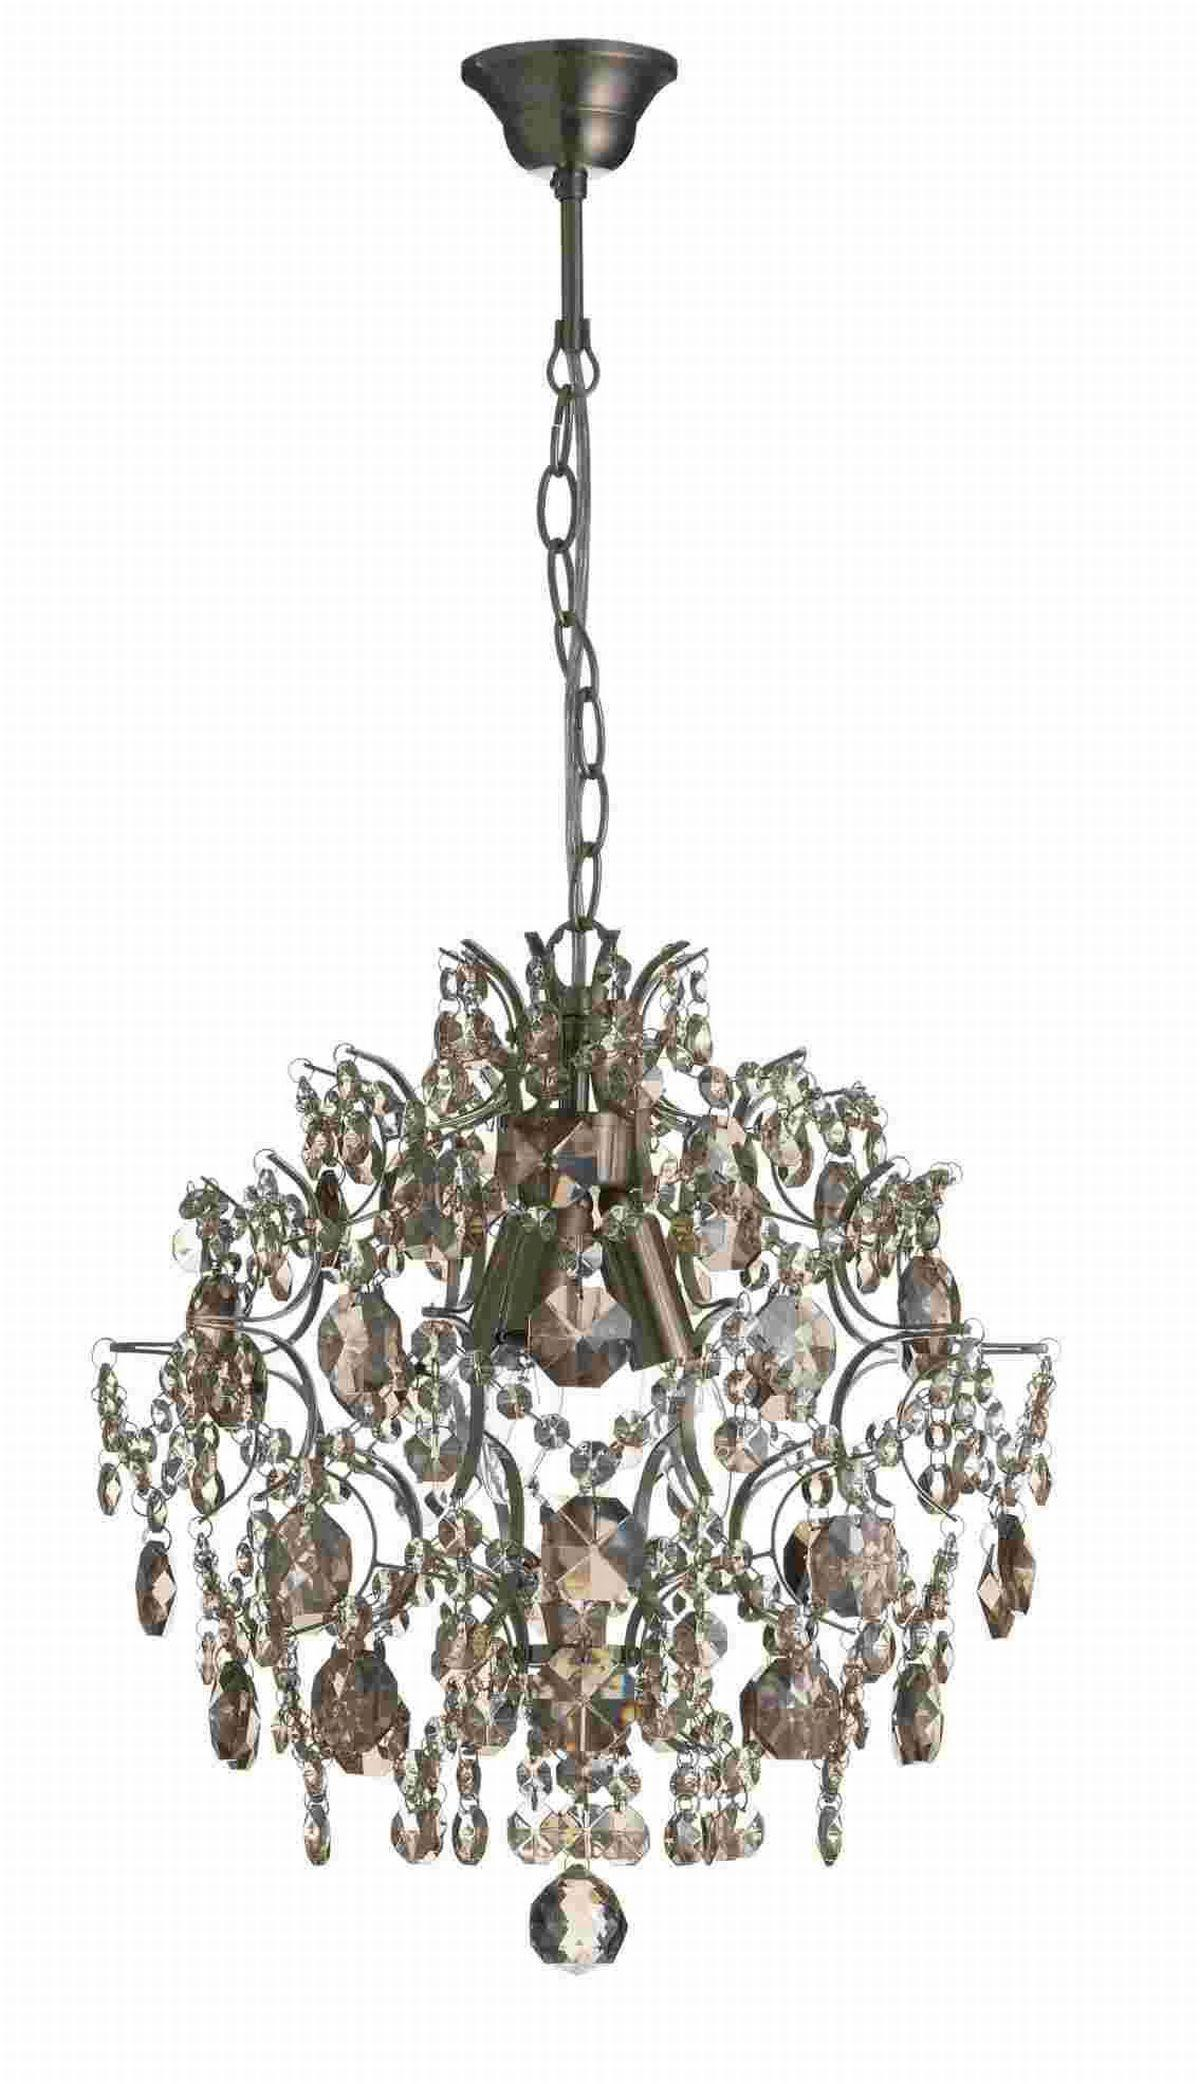 Chandeliers to suit your home chic and contemporary designs for chandeliers to suit your home chic and contemporary designs for every household evelyn chandelier john lewis aloadofball Image collections